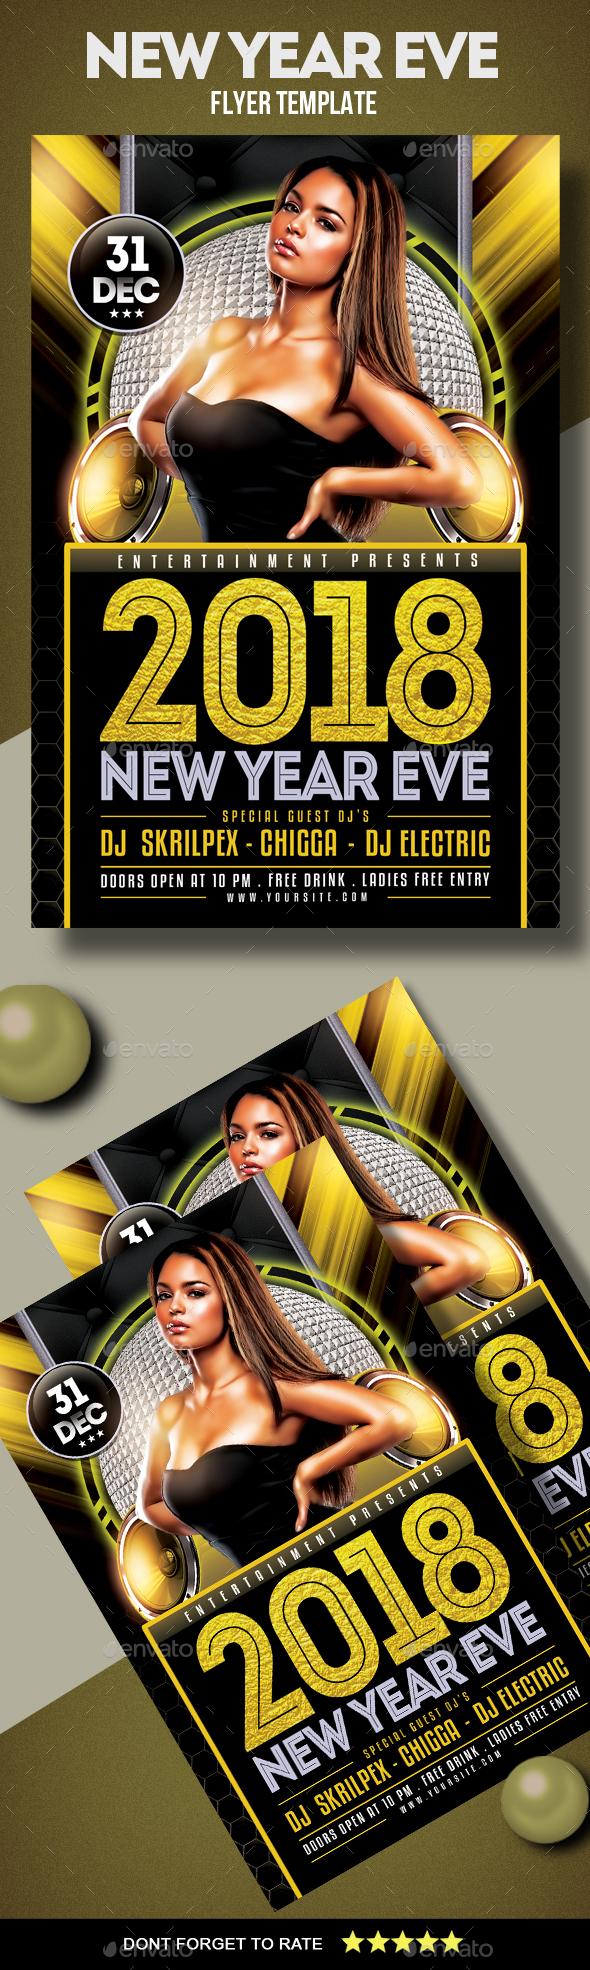 2018 New Year Eve Flyer - Clubs & Parties Events